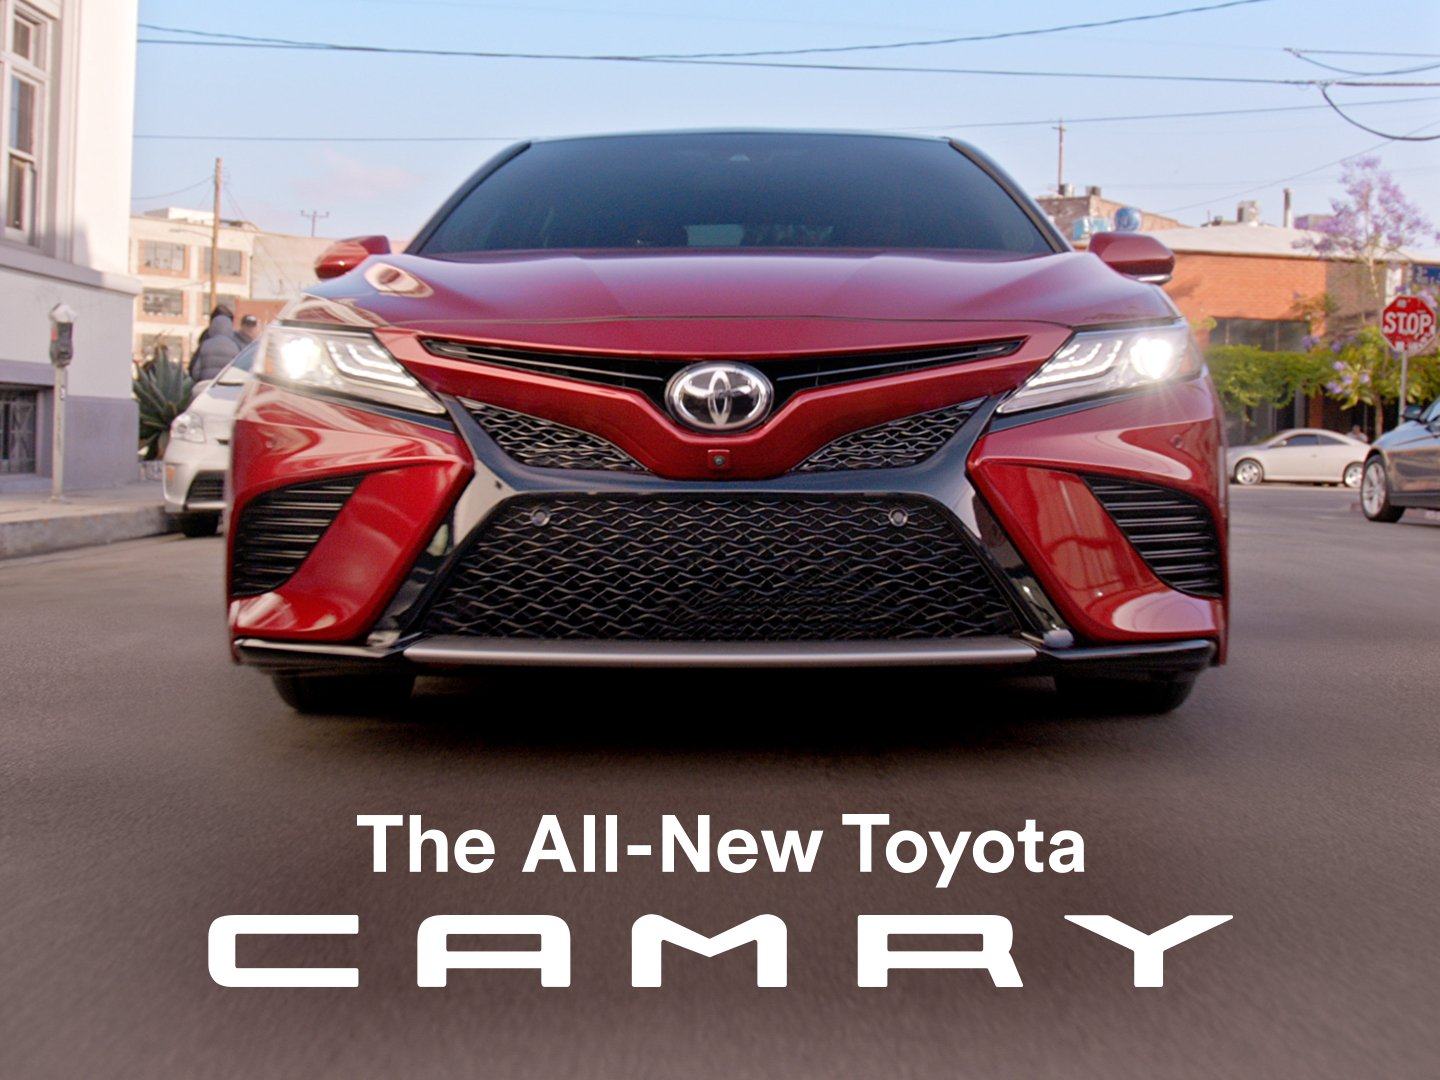 With a ride so smooth, comfort comes easy. #Camry https://t.co/DDu796GABt